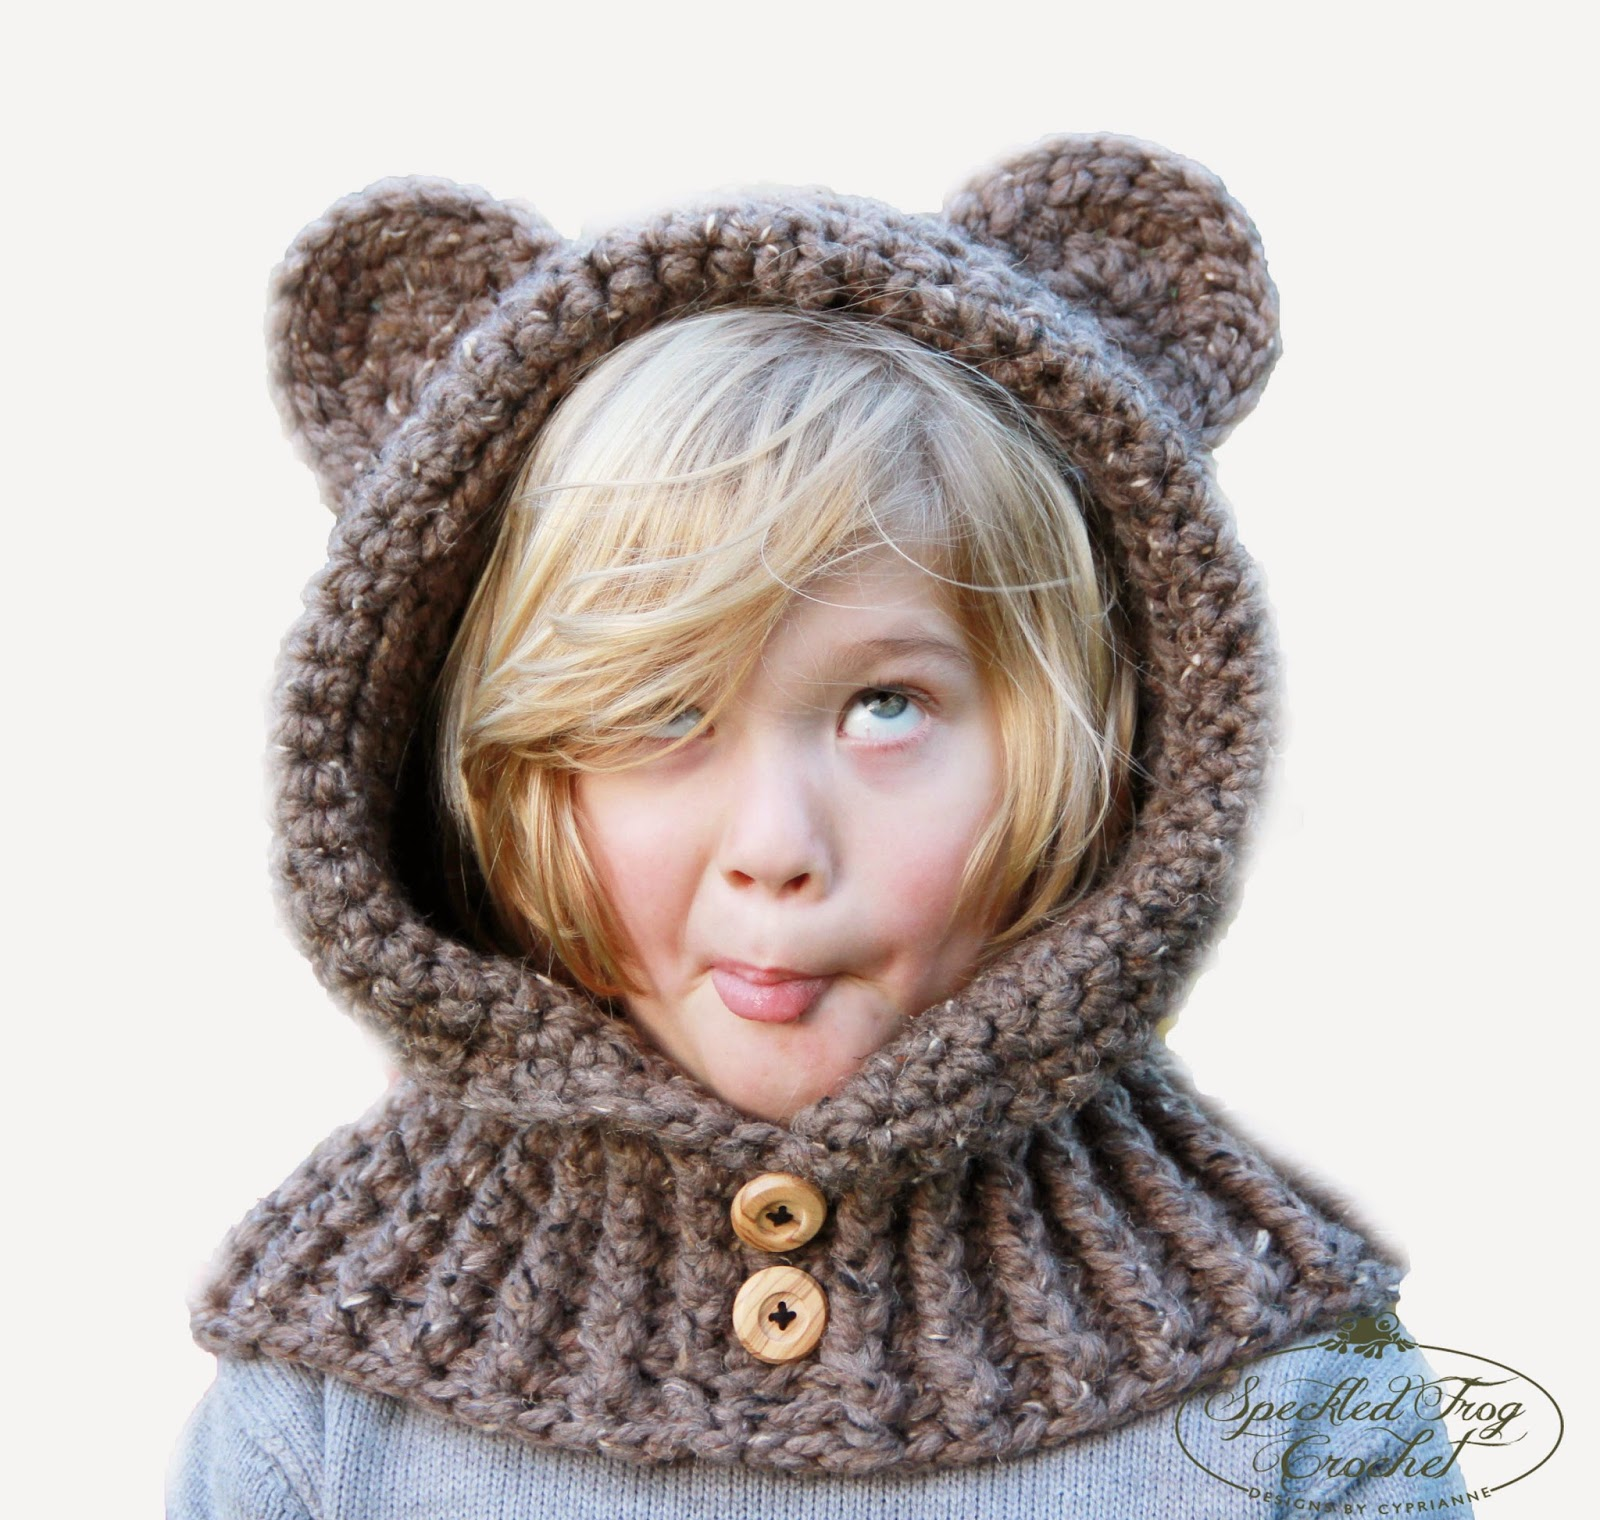 Free Crochet Patterns Cowls : Pretty Darn Adorable Crochet: CROCHET HOODED BEAR COWL PATTERN